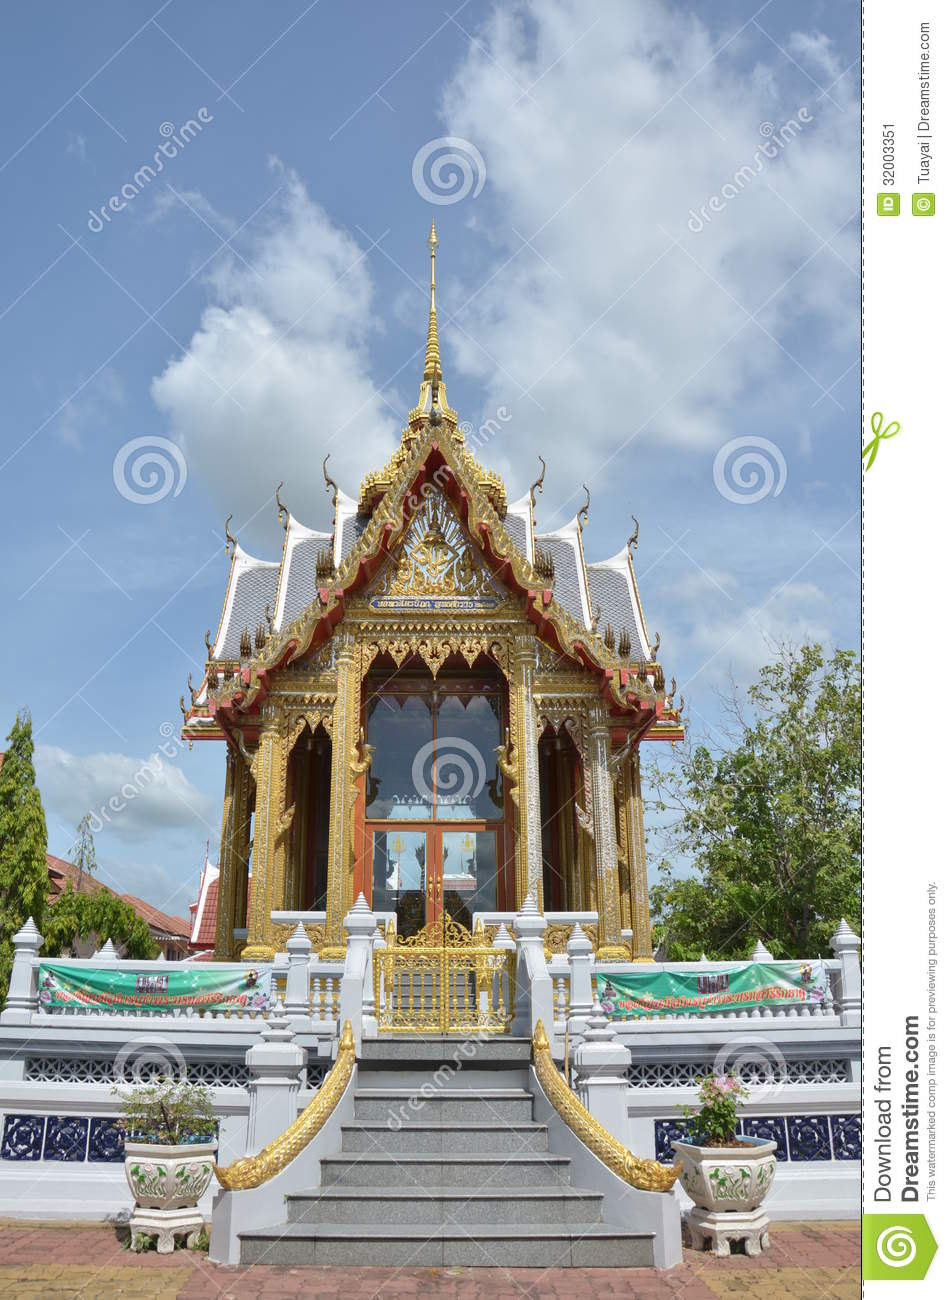 Thai temple art and architecture for Wat architecture